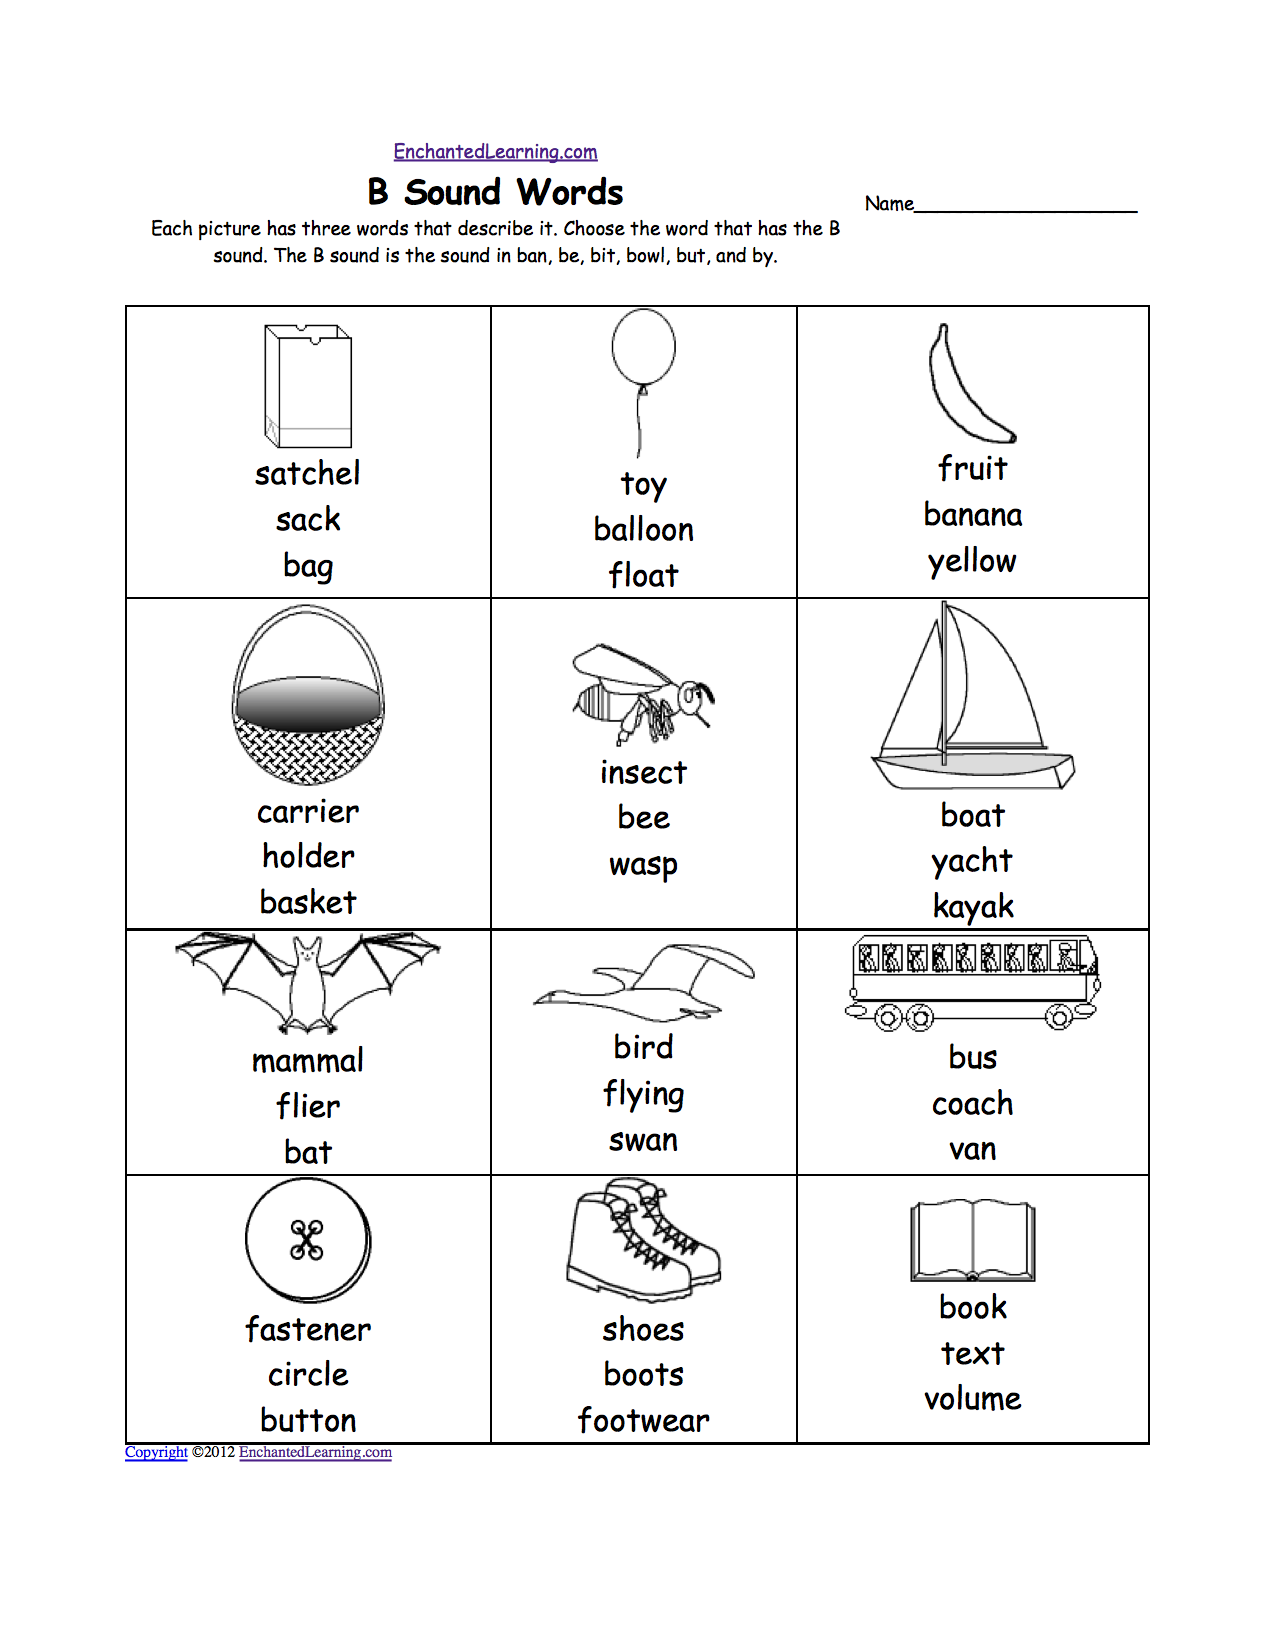 Proatmealus  Seductive Phonics Worksheets Multiple Choice Worksheets To Print  With Inspiring Quotbquot Sound Phonics Worksheet Multiple Choice Each Picture Has Three Words That Describe It Choose The Word That Has A Quotbquot Sound The Quotbquot Sound Is The Sound  With Endearing Reading Comprehension Worksheets For Grade  Also Worksheets On Complementary And Supplementary Angles In Addition Free Jolly Phonics Worksheets And Reciprocal Reading Worksheets As Well As Free Printable Food Pyramid Worksheets Additionally English Worksheet For Class  From Enchantedlearningcom With Proatmealus  Inspiring Phonics Worksheets Multiple Choice Worksheets To Print  With Endearing Quotbquot Sound Phonics Worksheet Multiple Choice Each Picture Has Three Words That Describe It Choose The Word That Has A Quotbquot Sound The Quotbquot Sound Is The Sound  And Seductive Reading Comprehension Worksheets For Grade  Also Worksheets On Complementary And Supplementary Angles In Addition Free Jolly Phonics Worksheets From Enchantedlearningcom